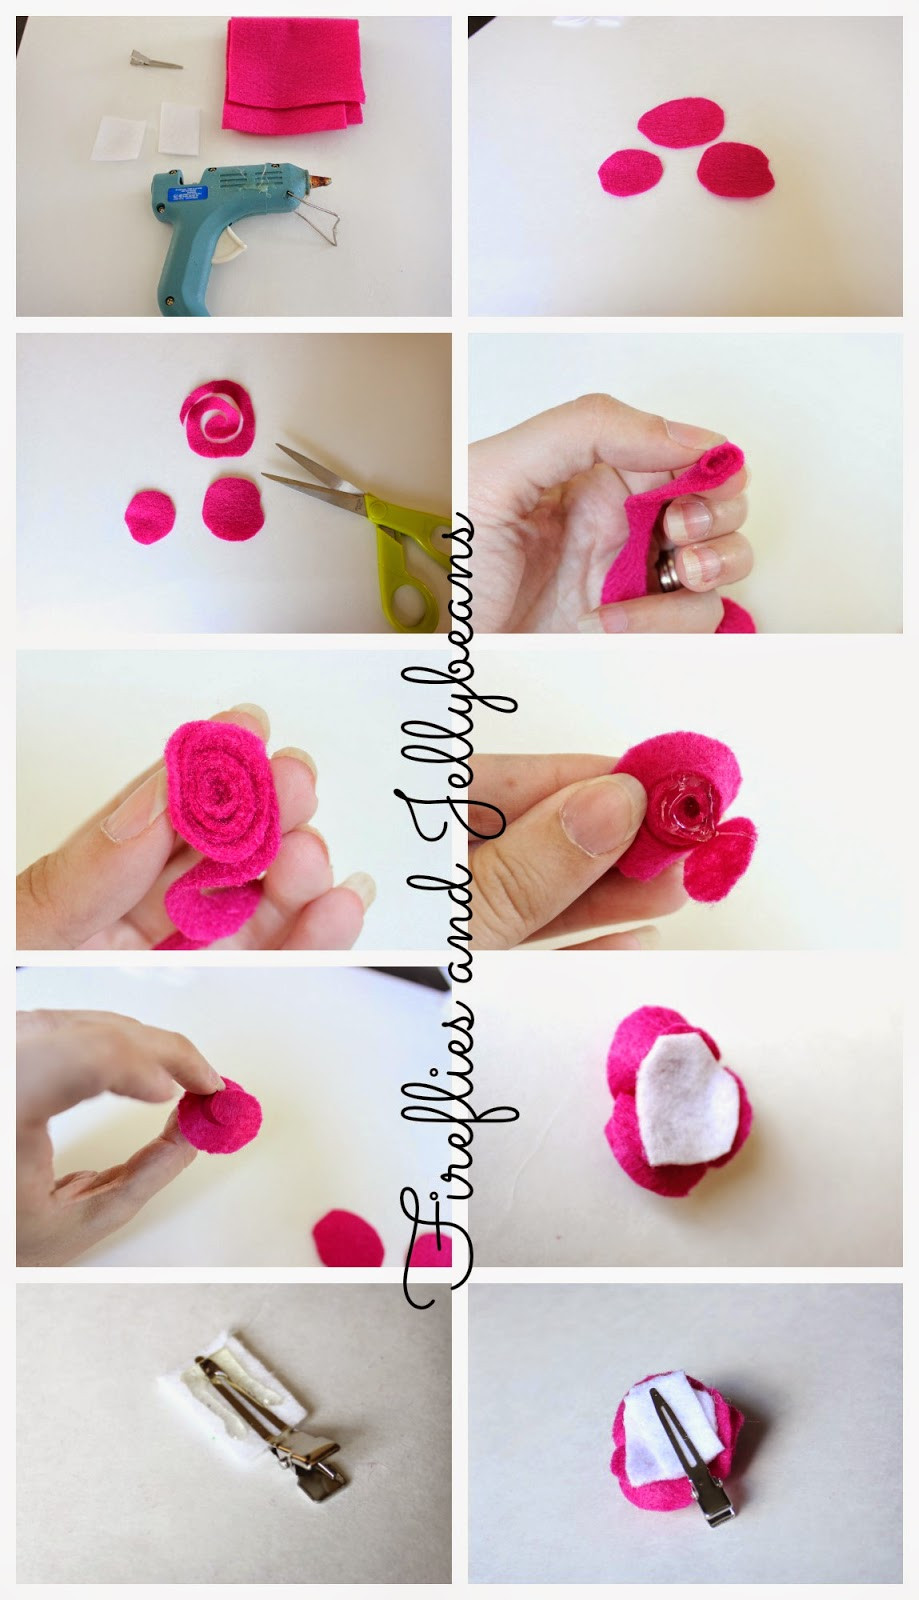 Best ideas about DIY Hair Clips . Save or Pin Fireflies and Jellybeans 3 Easy DIY 5 Minute Hair Clips Now.